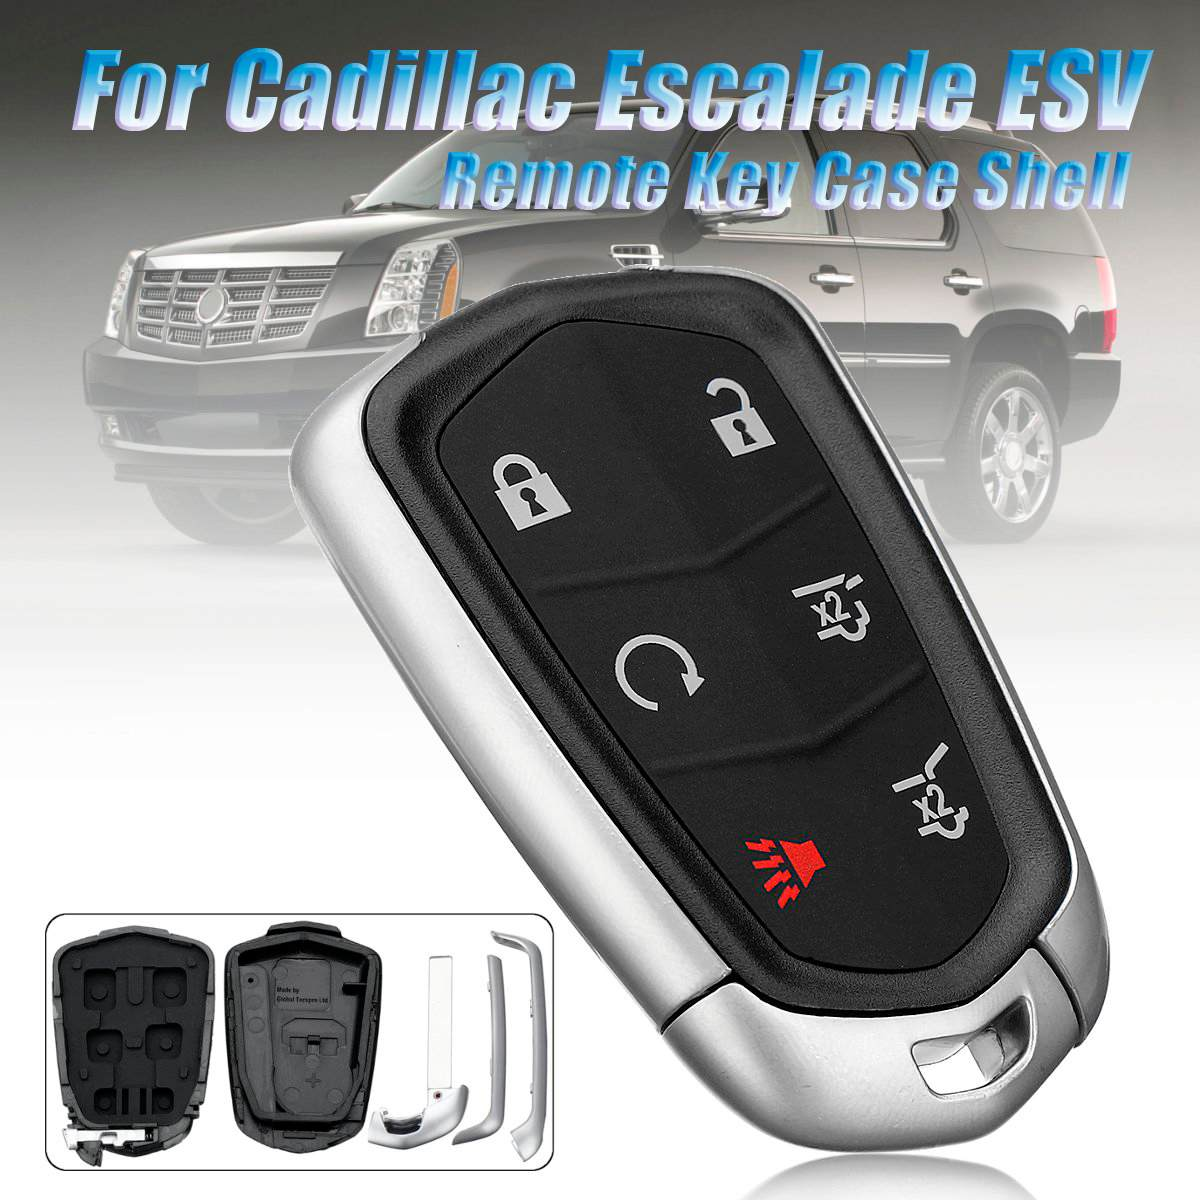 Womens Red Leather Car Remote Key Fob Holder Case Cover Etui Shell with Braided Key Chain /& Key Rings for 5 Buttons New Cadillac ESV Escalade GTS CTS XTS SRX ATS XT5 CT6 Auto Accessories Gift